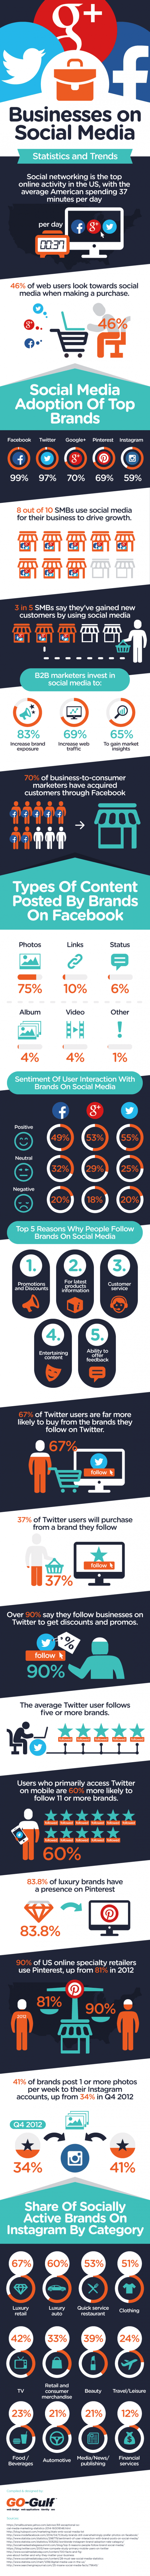 Upcoming 2015 Statistics and Trends for Businesses on Social Media